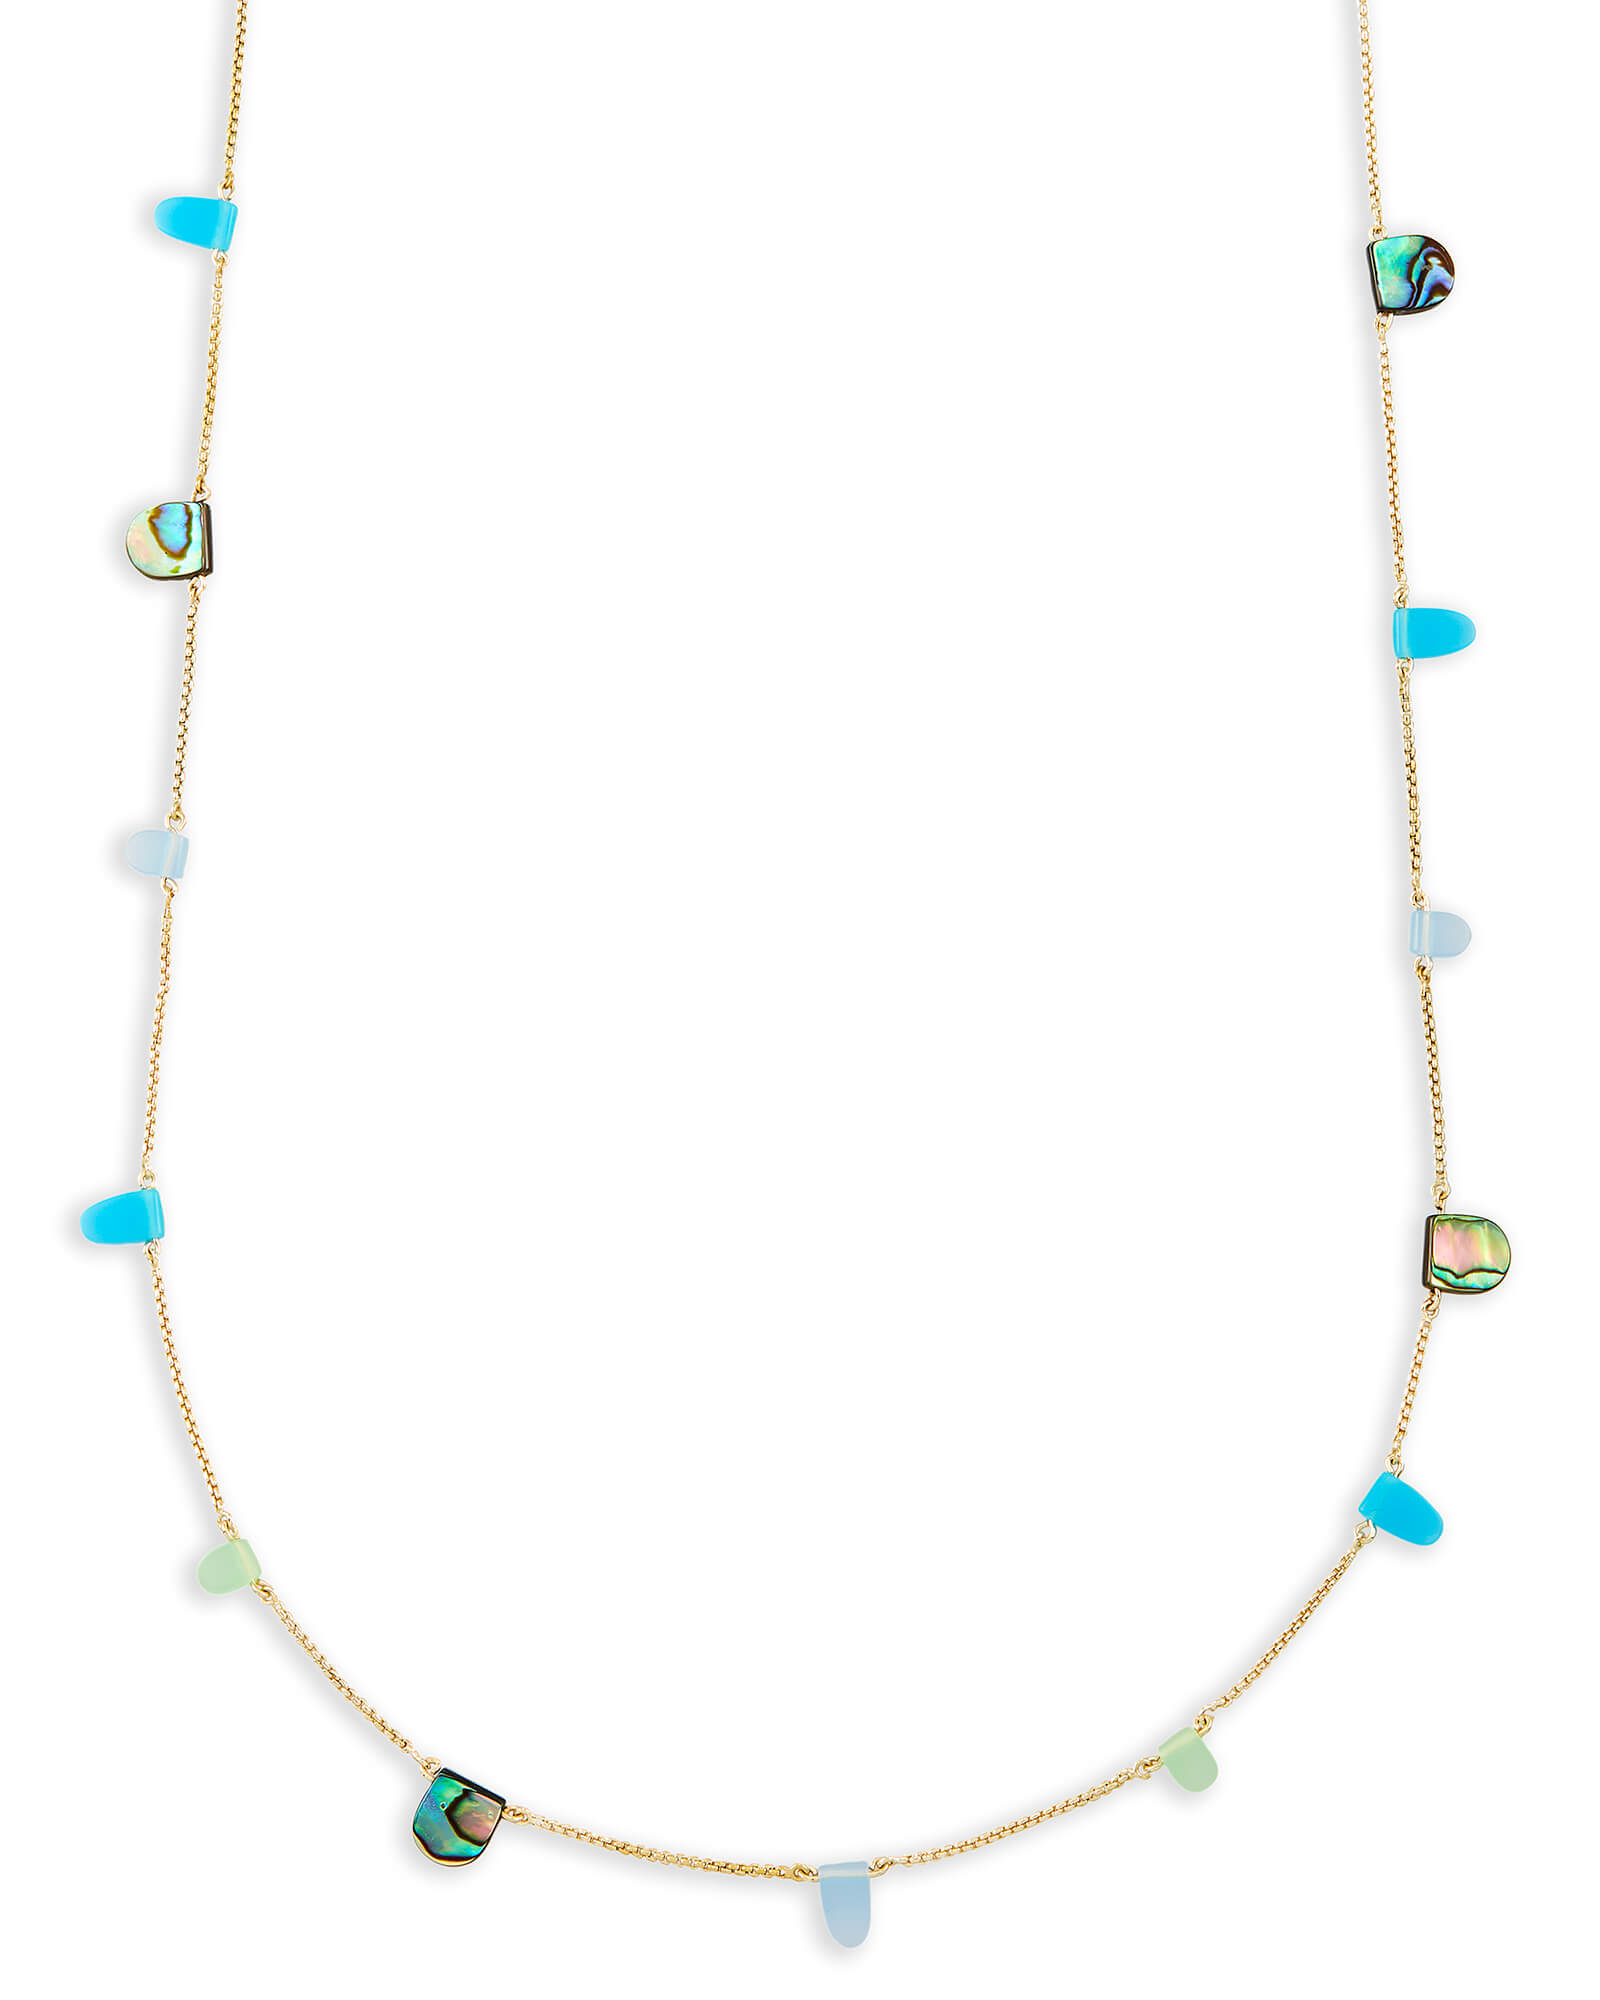 Leola Long Necklace in Blue Mix